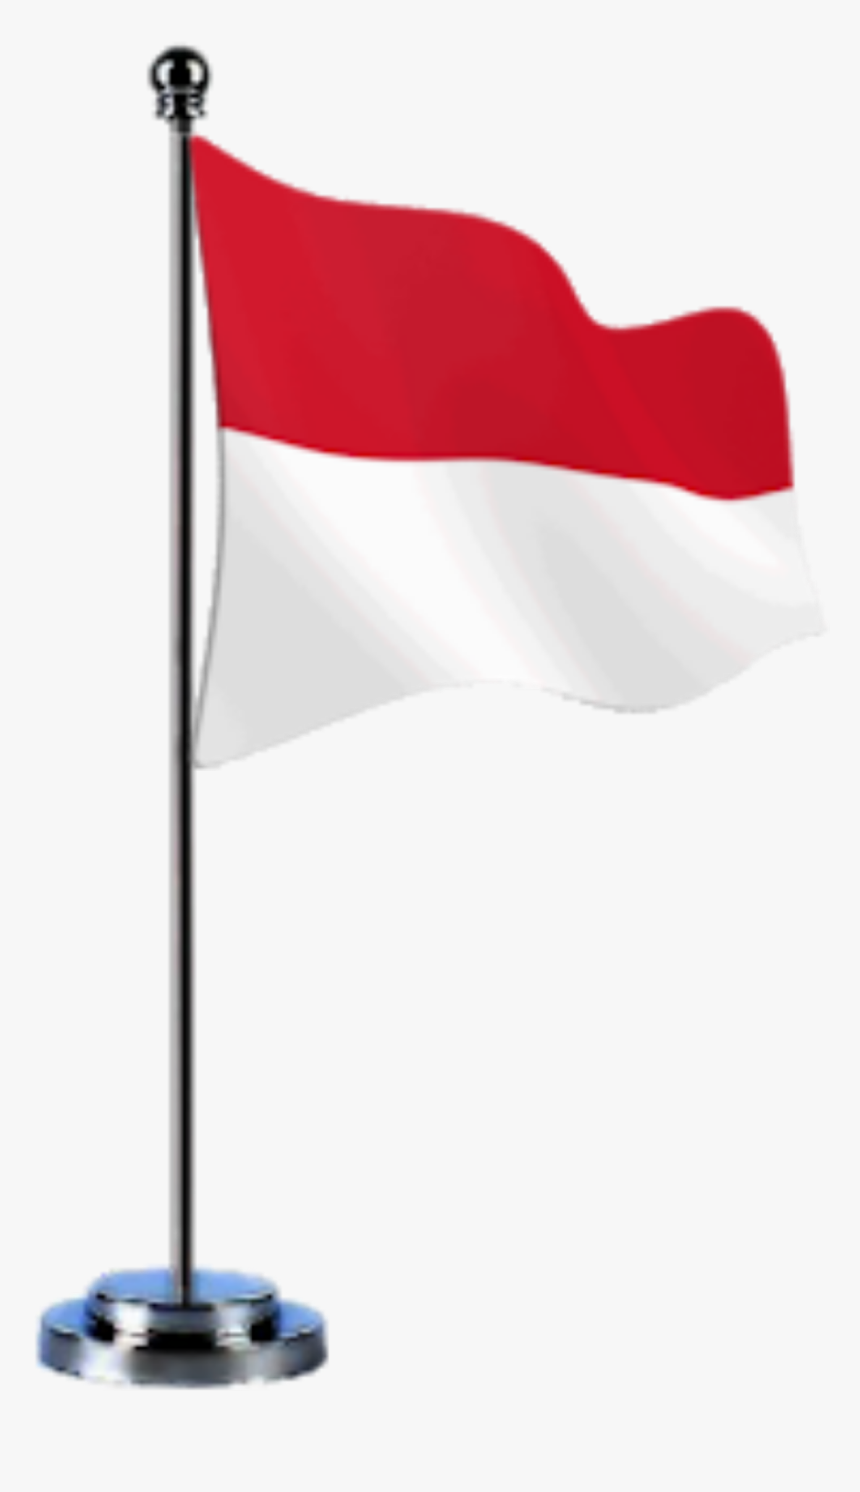 bendera merah putih vector hd hd png download transparent png image pngitem bendera merah putih vector hd hd png